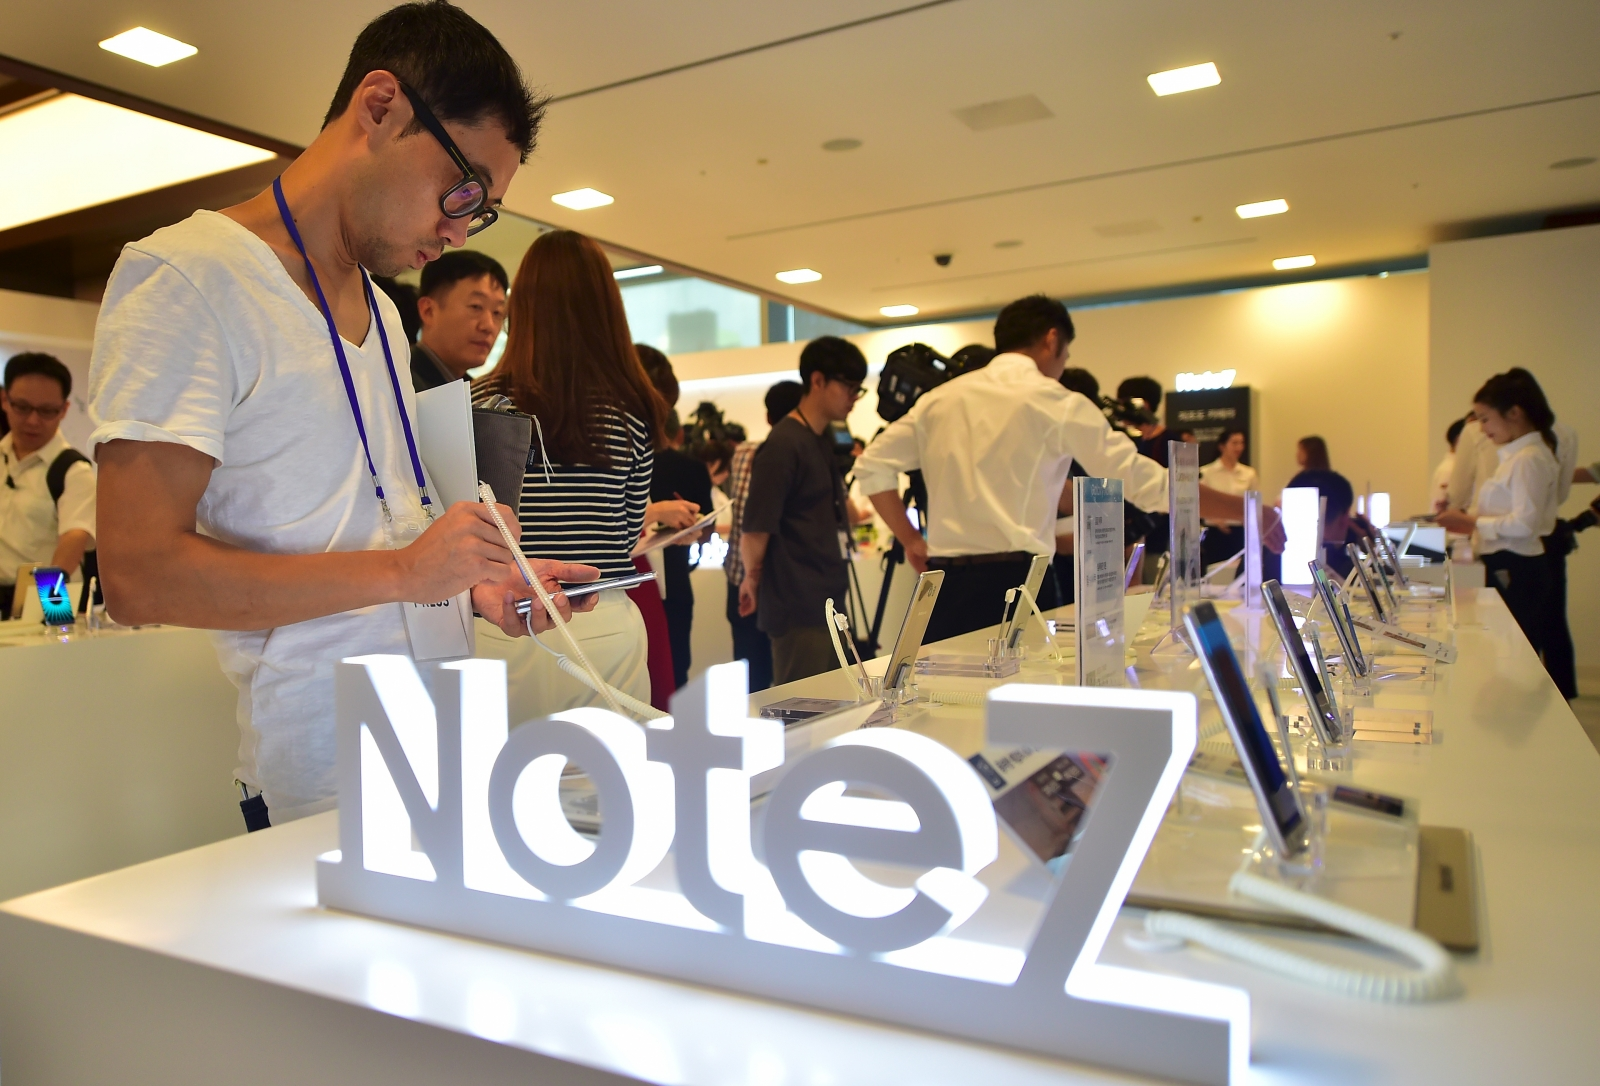 Samsung halts global sales and recalls Galaxy Note 7 over